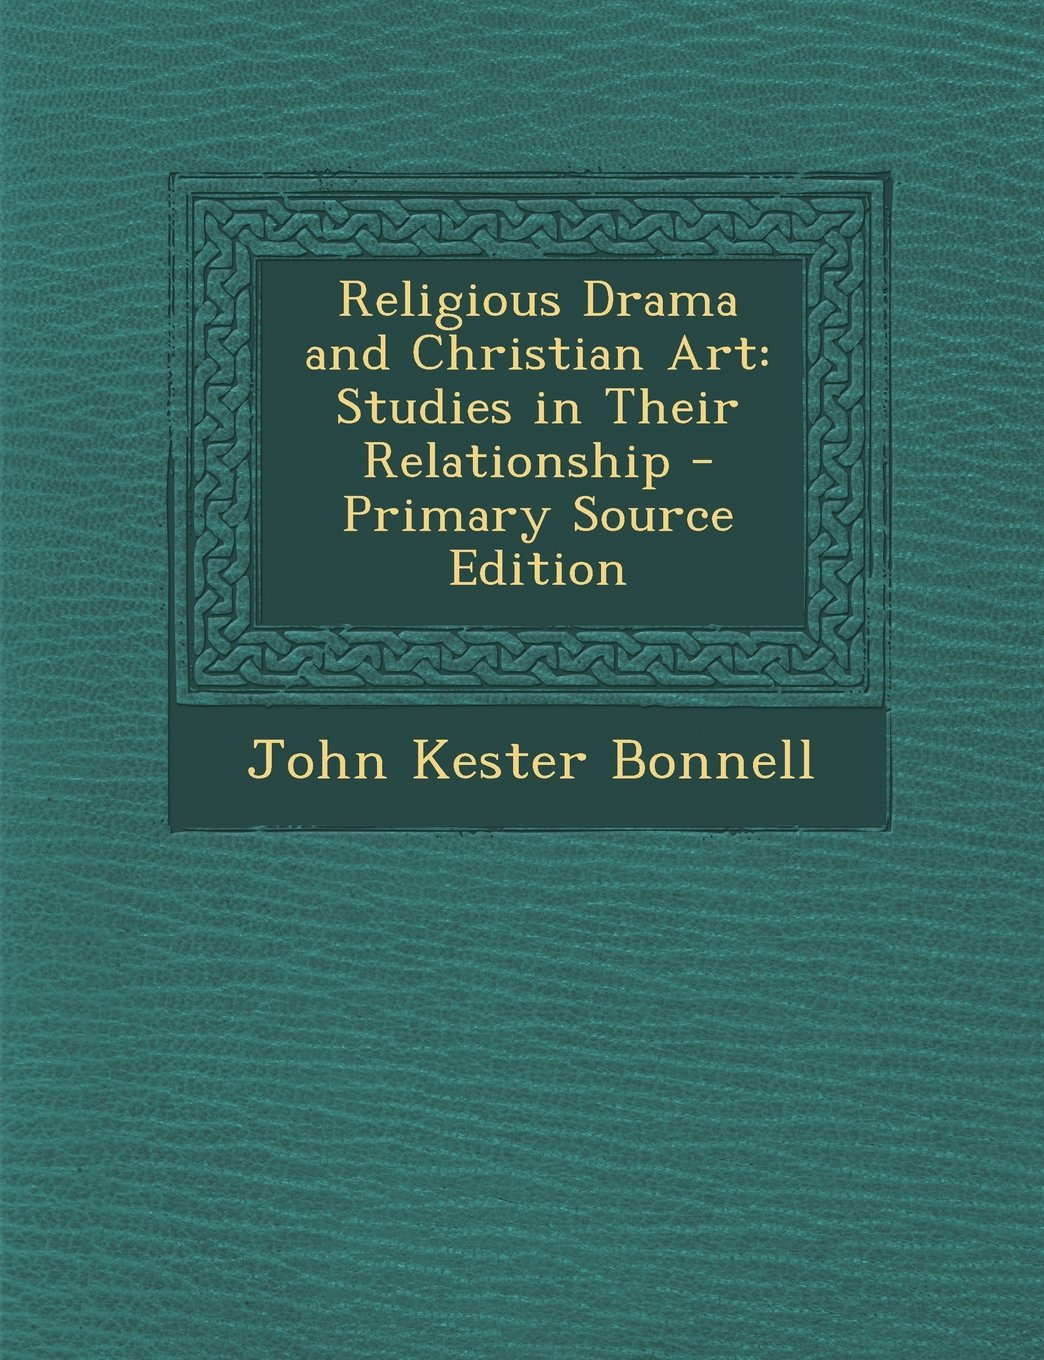 Download Religious Drama and Christian Art: Studies in Their Relationship PDF